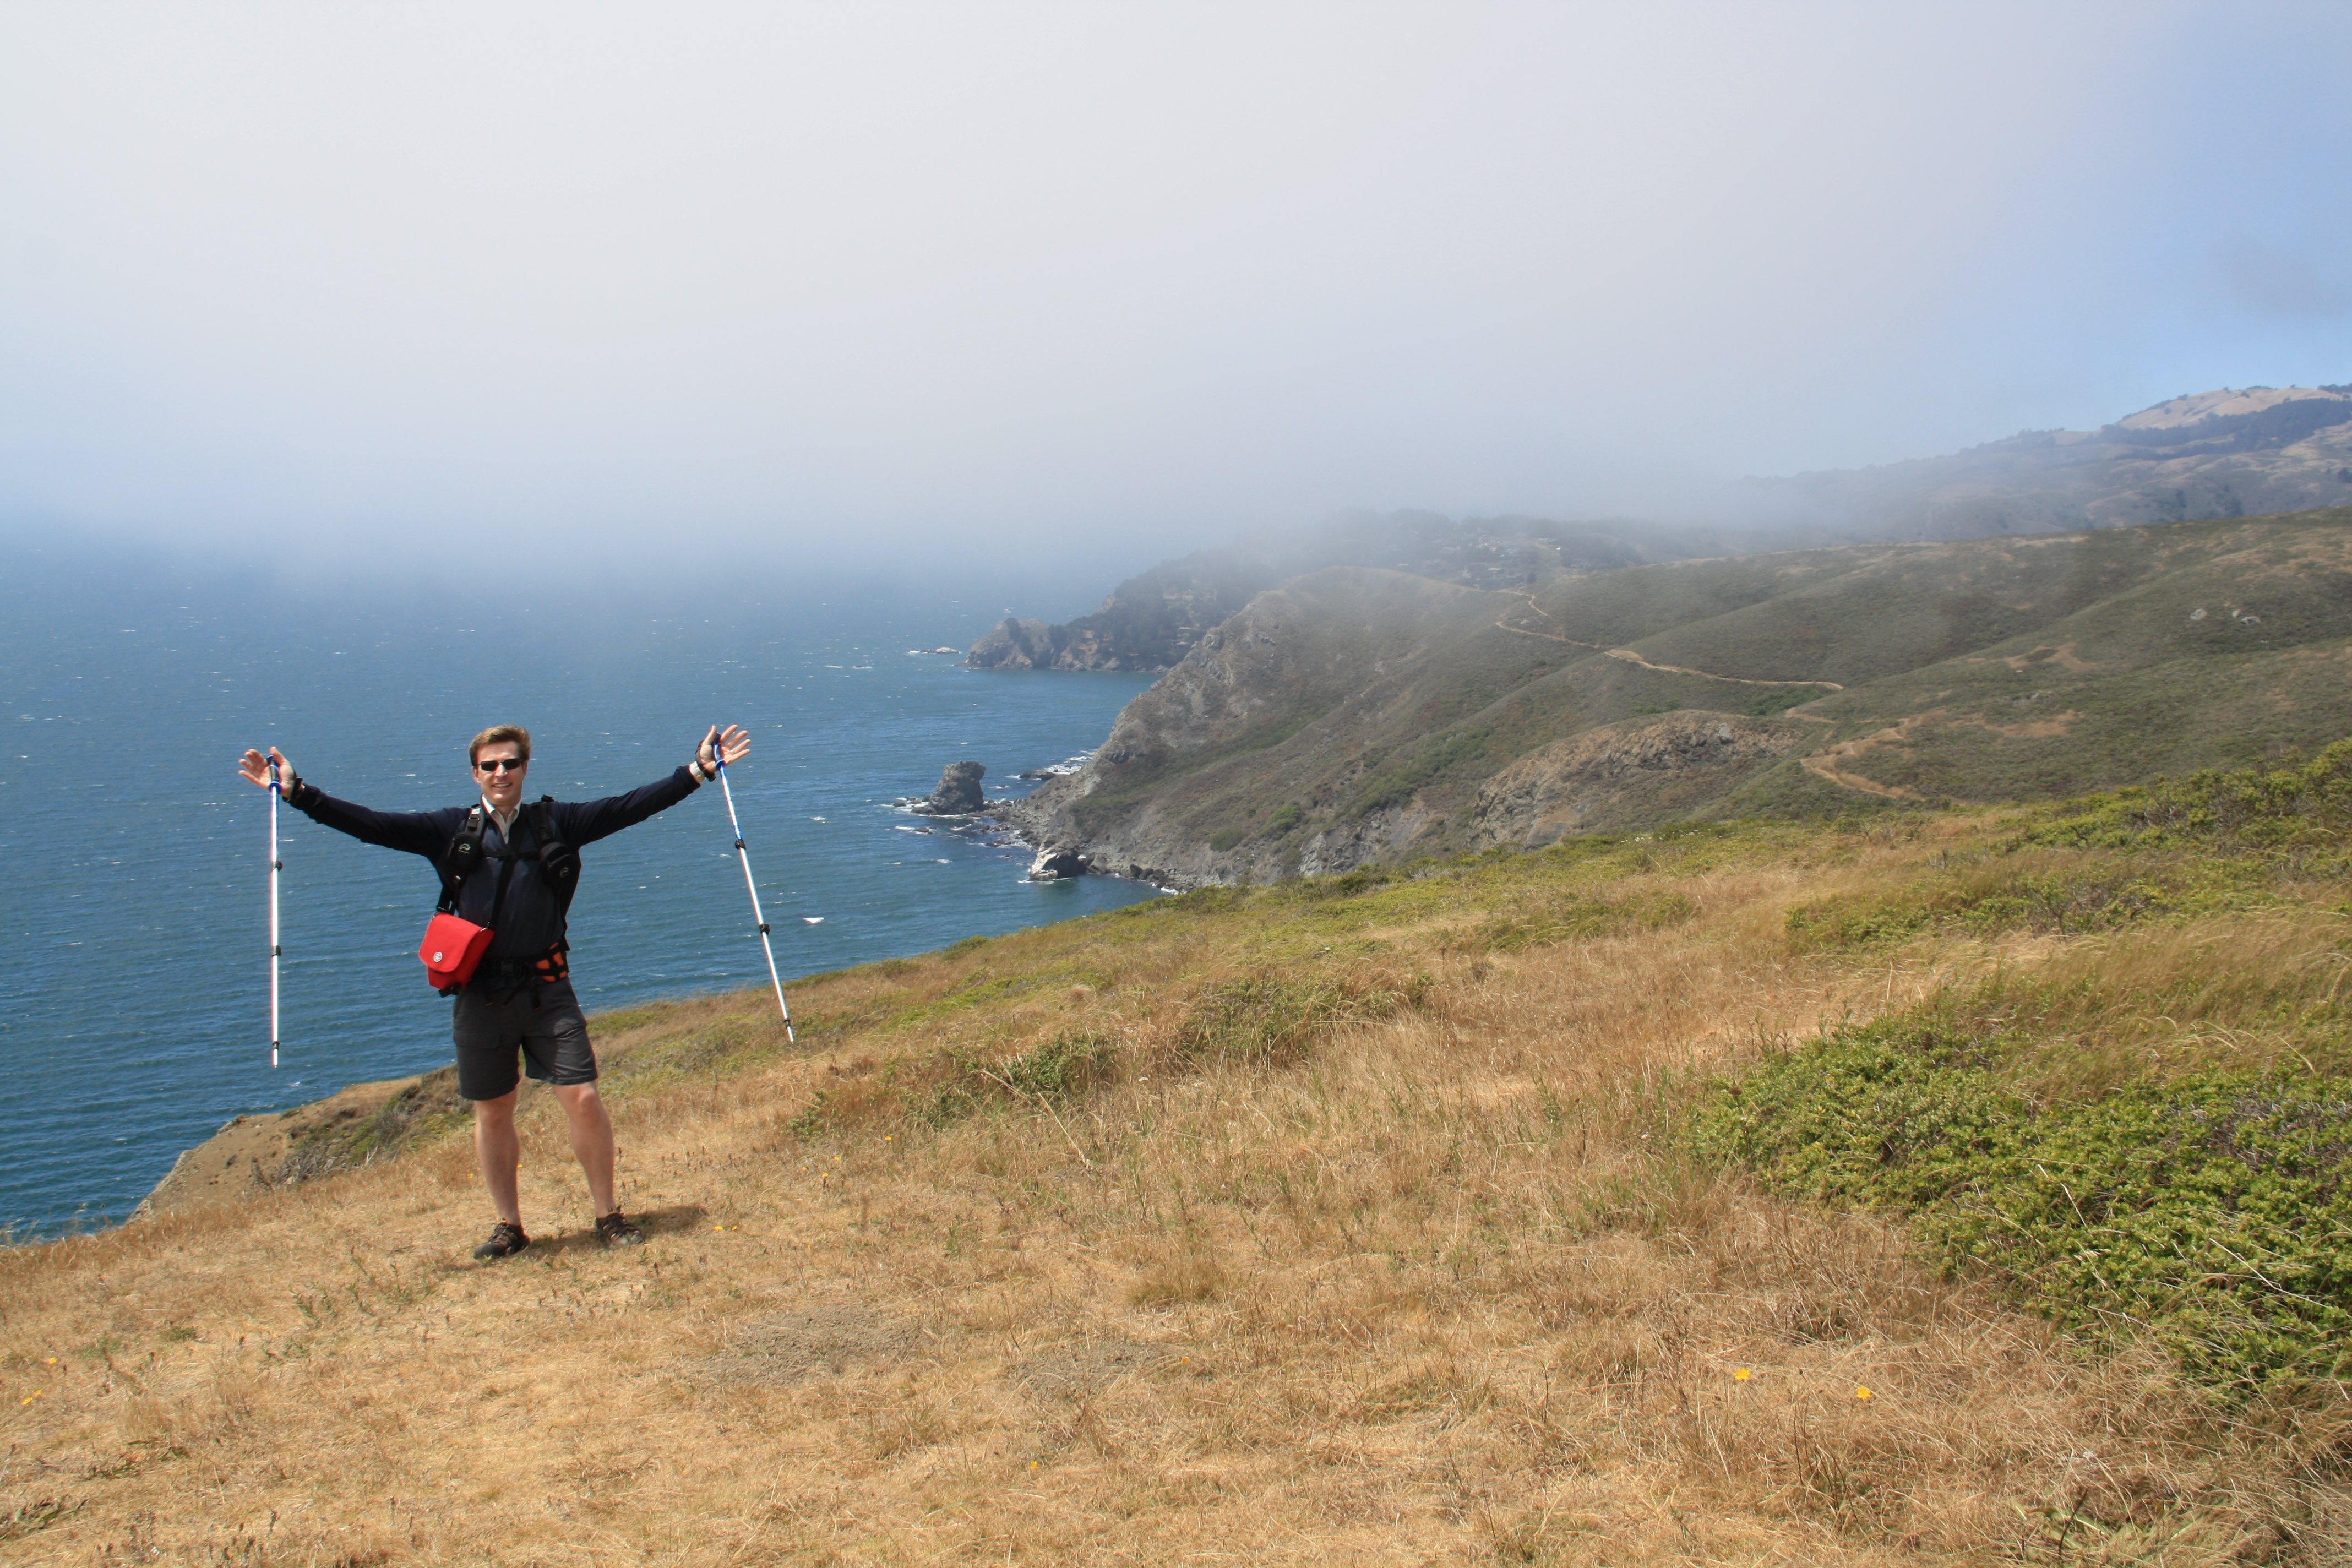 A Wine Country Trekker on the Coastal Trail between Sausalito and Muir Beach